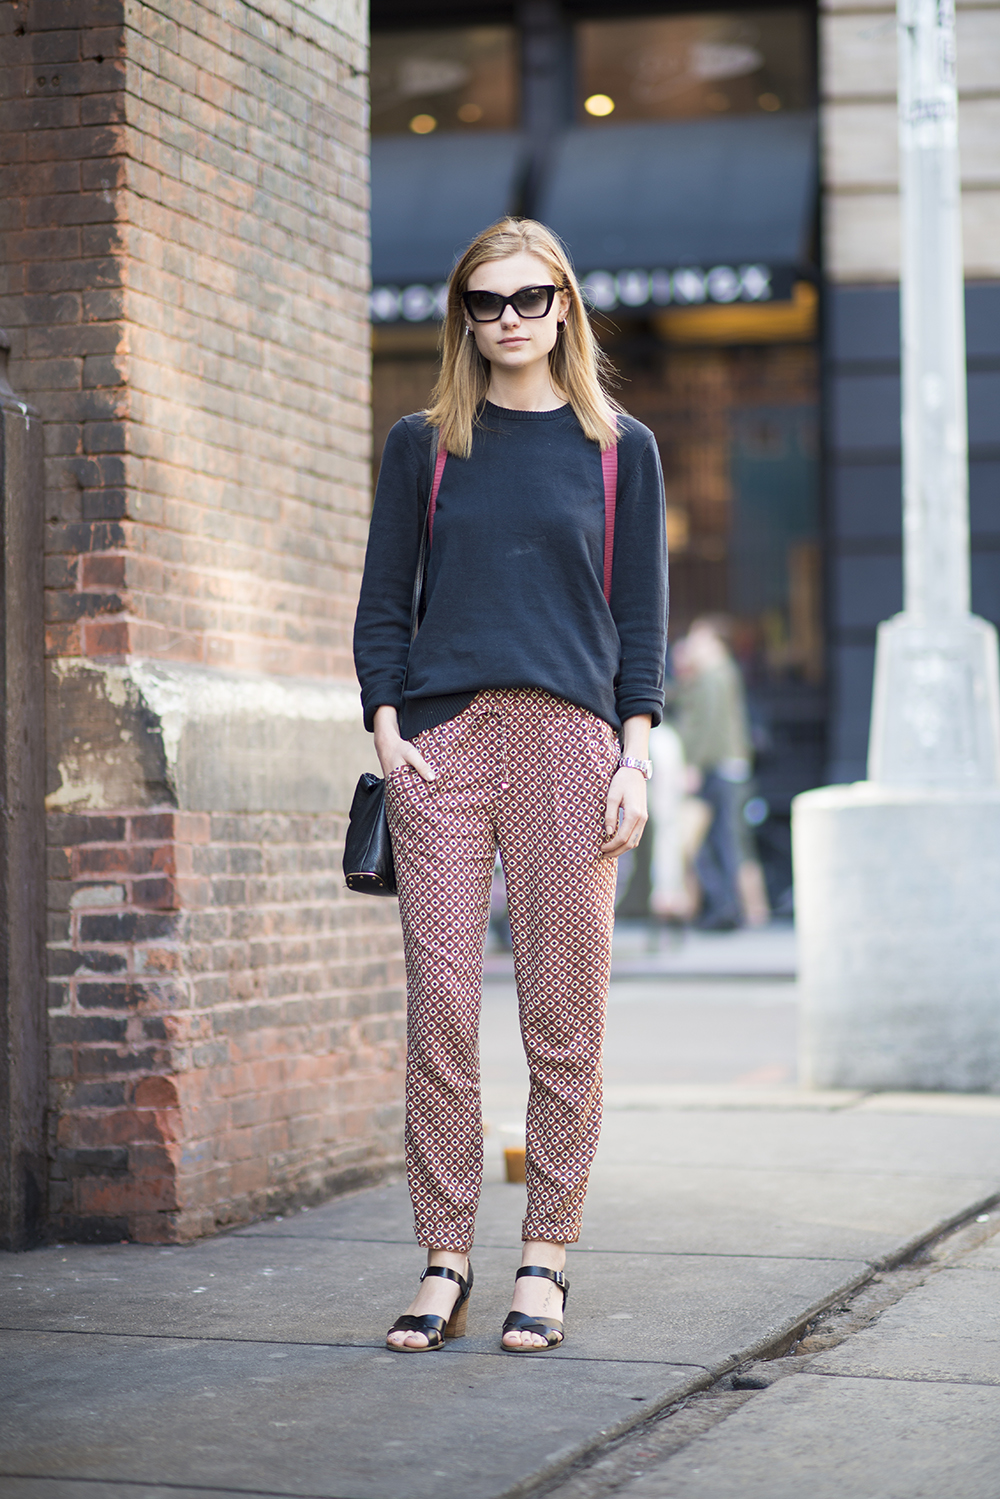 Update your staple Summer knit with a great pair of ...